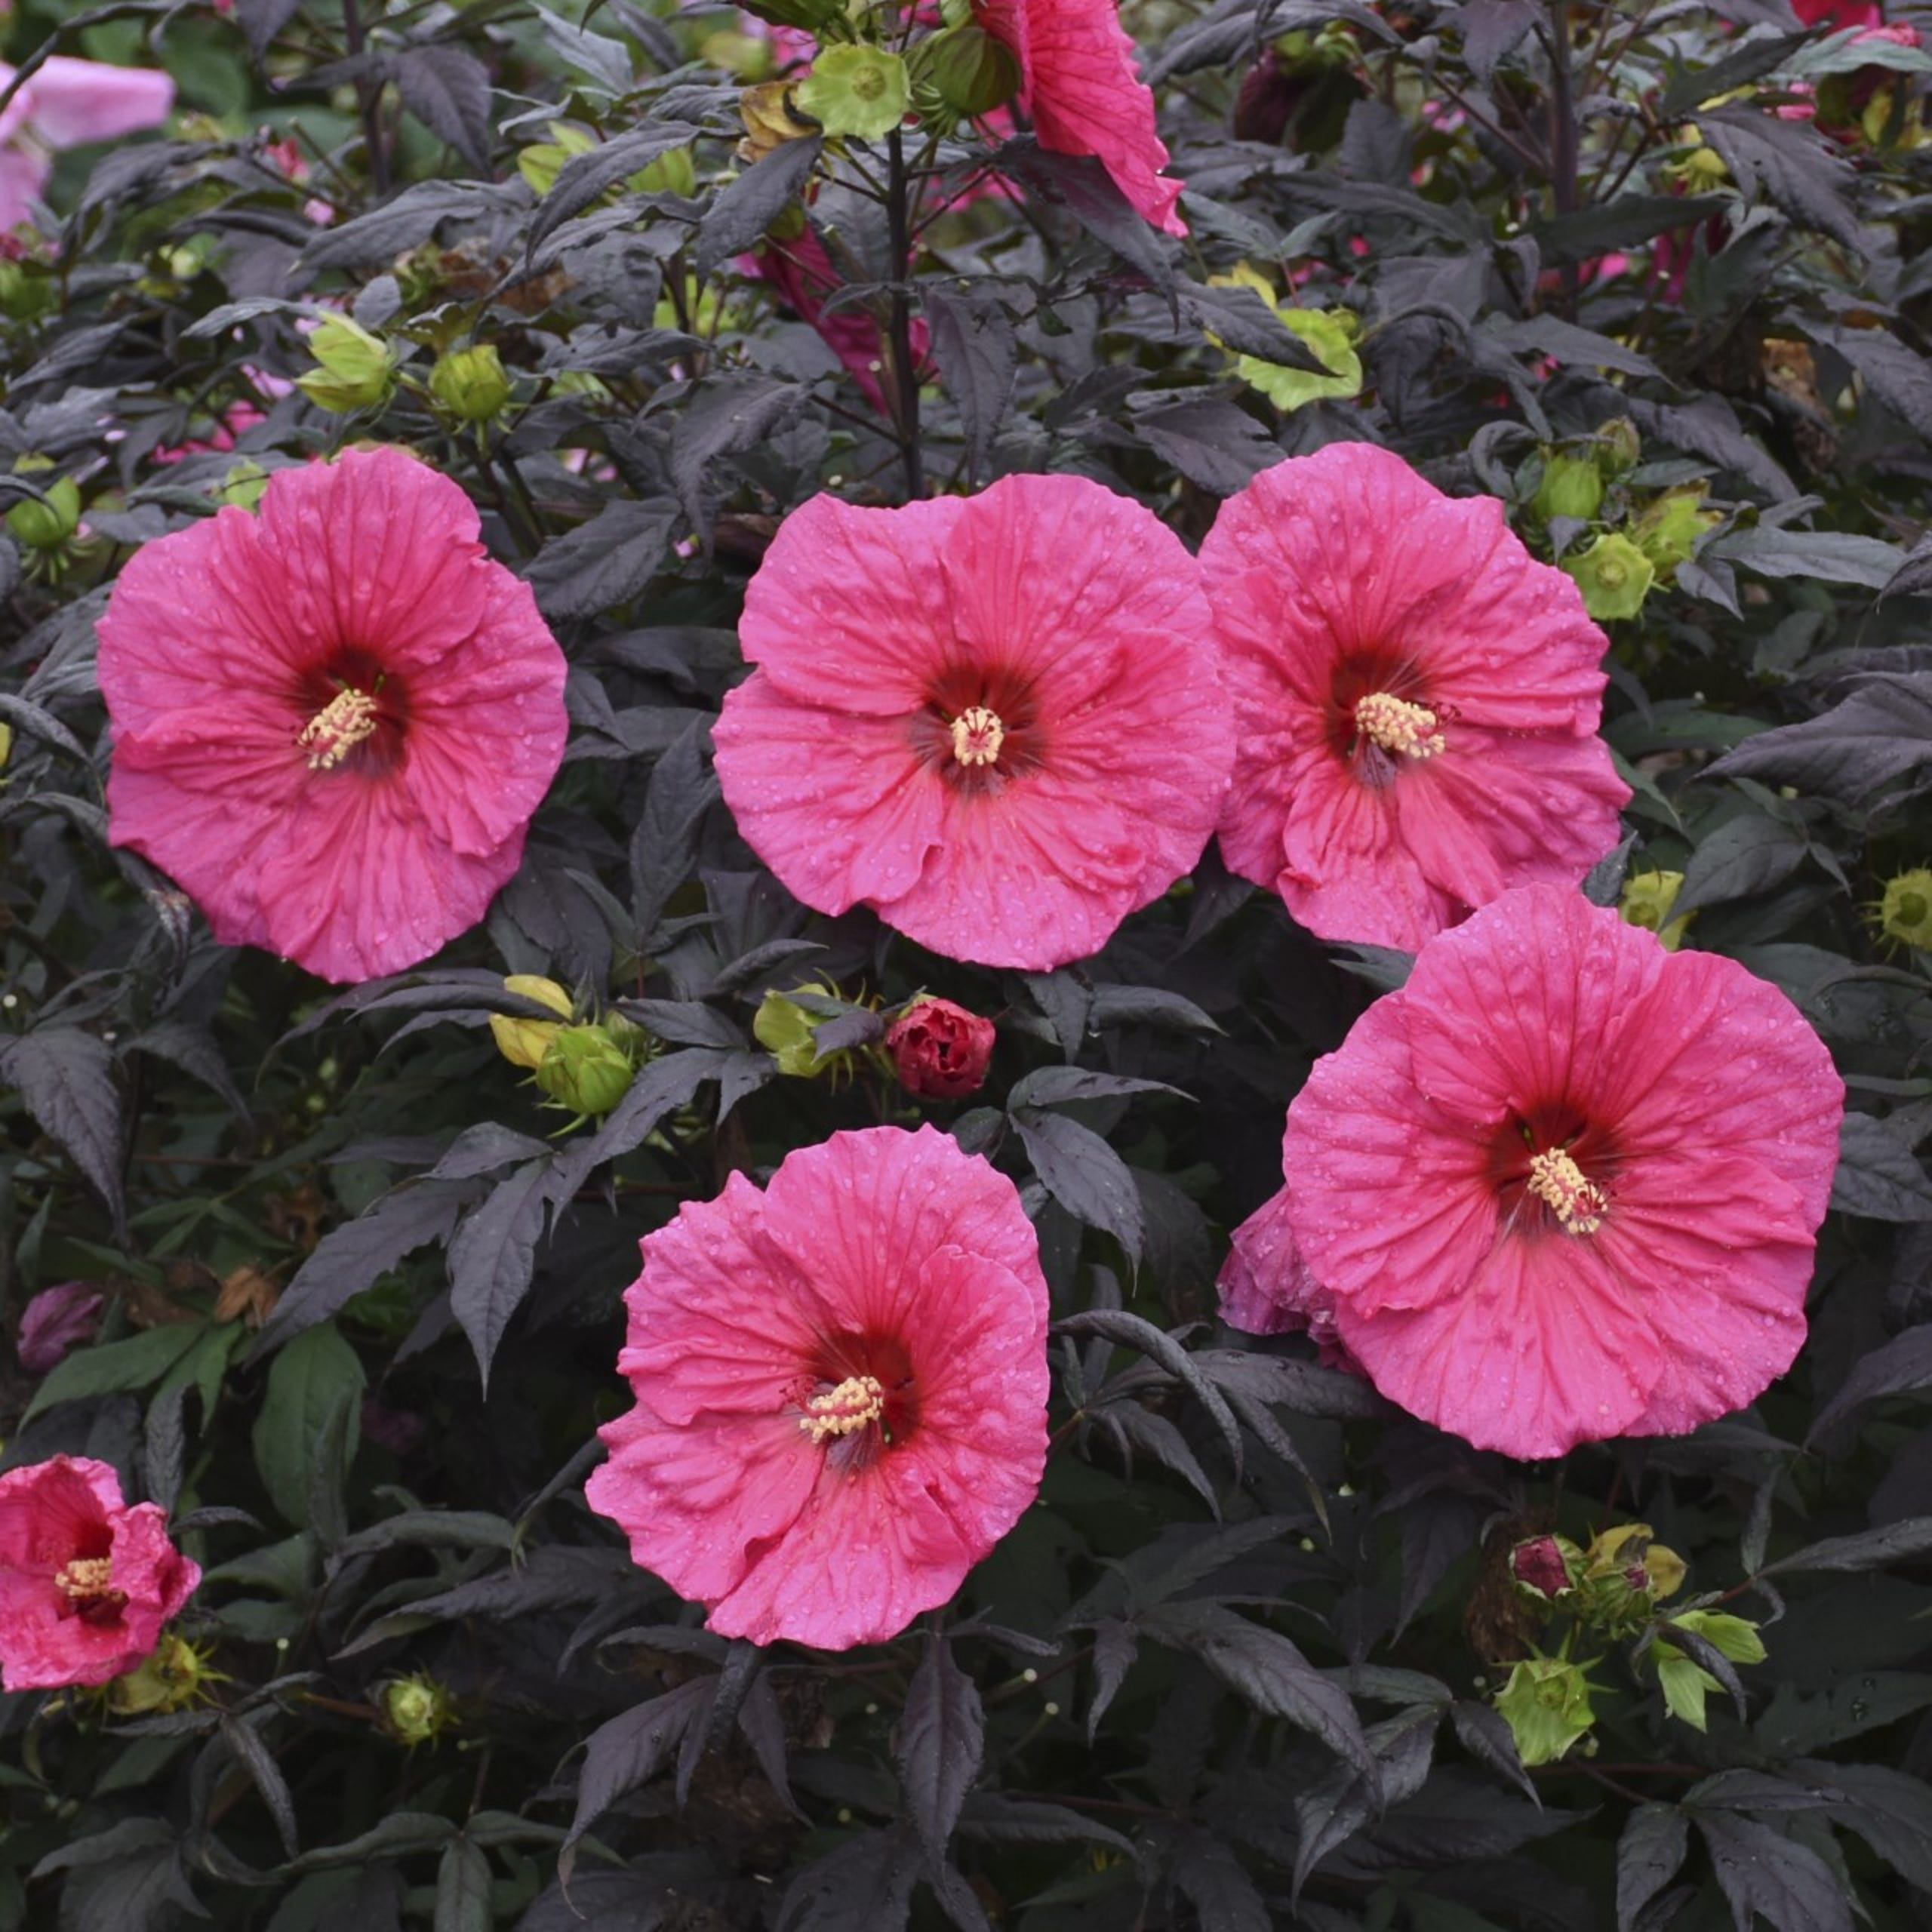 d778ebbb6 Hibiscus Evening Rose, a new plant that will be available in 2020, is lovely